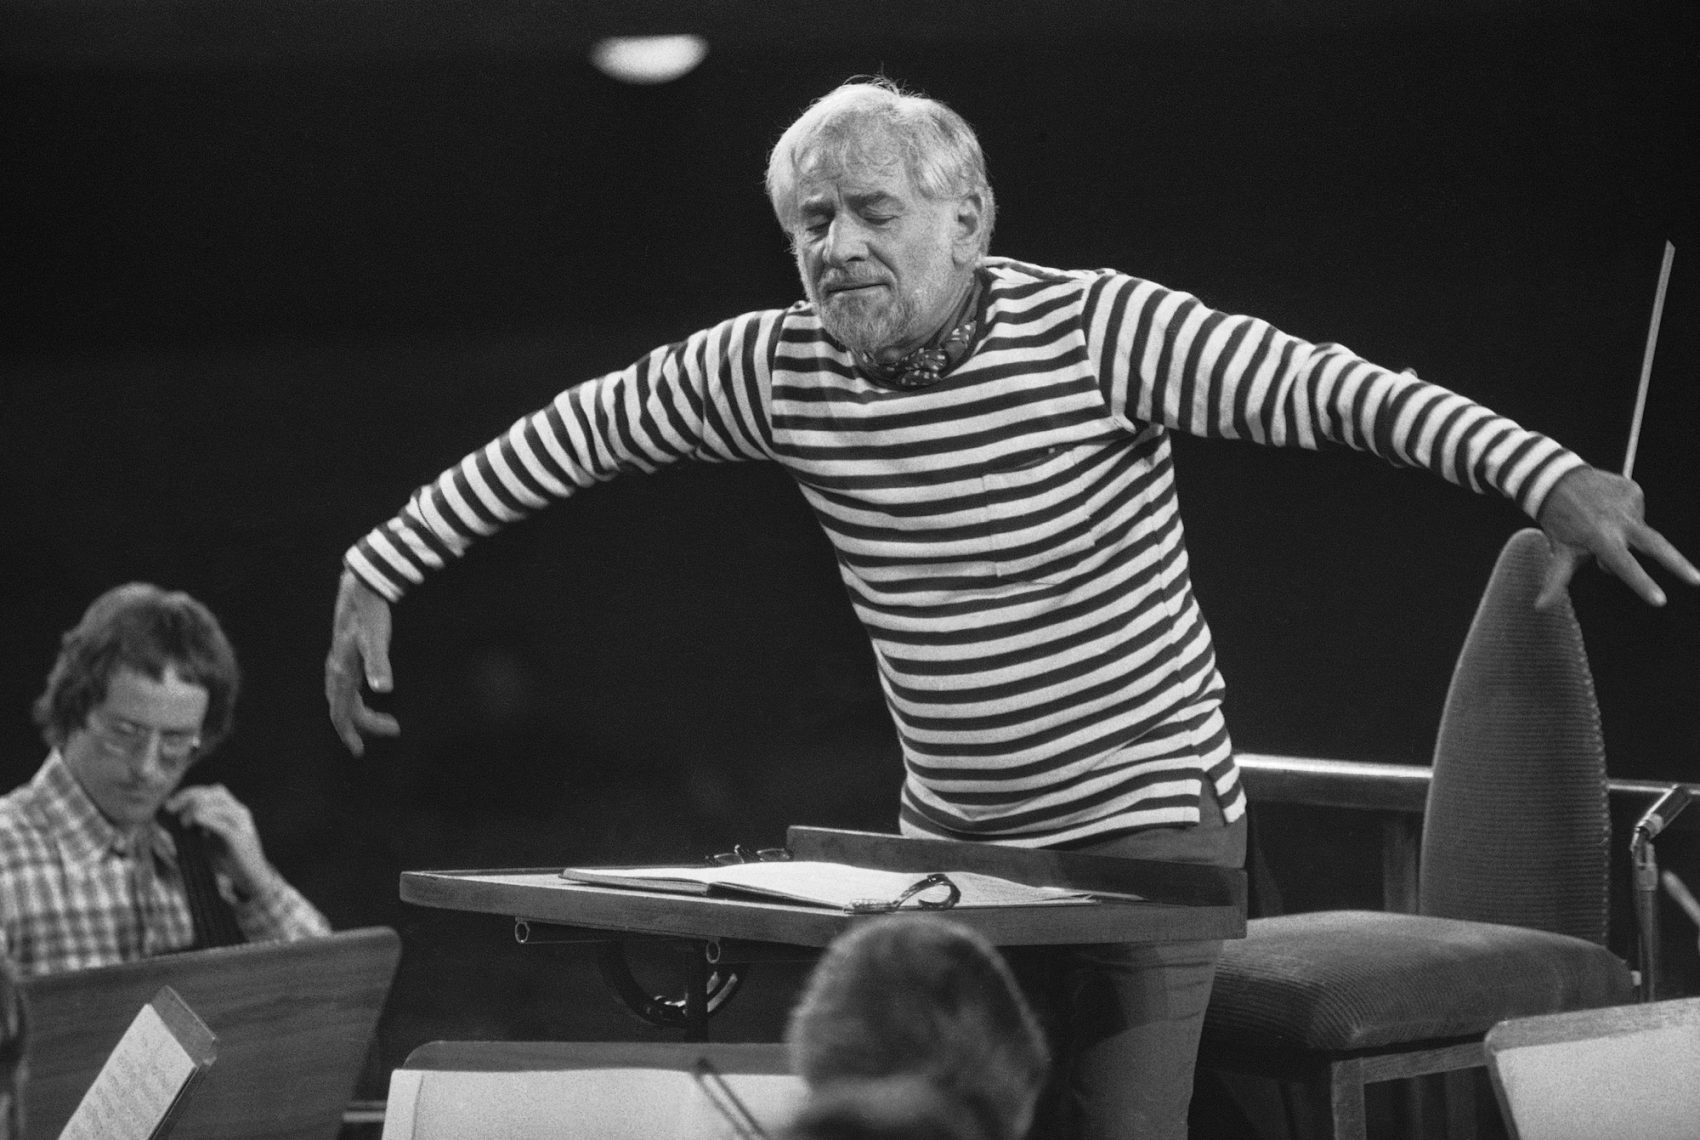 leonard bernstein conducting - photo #24